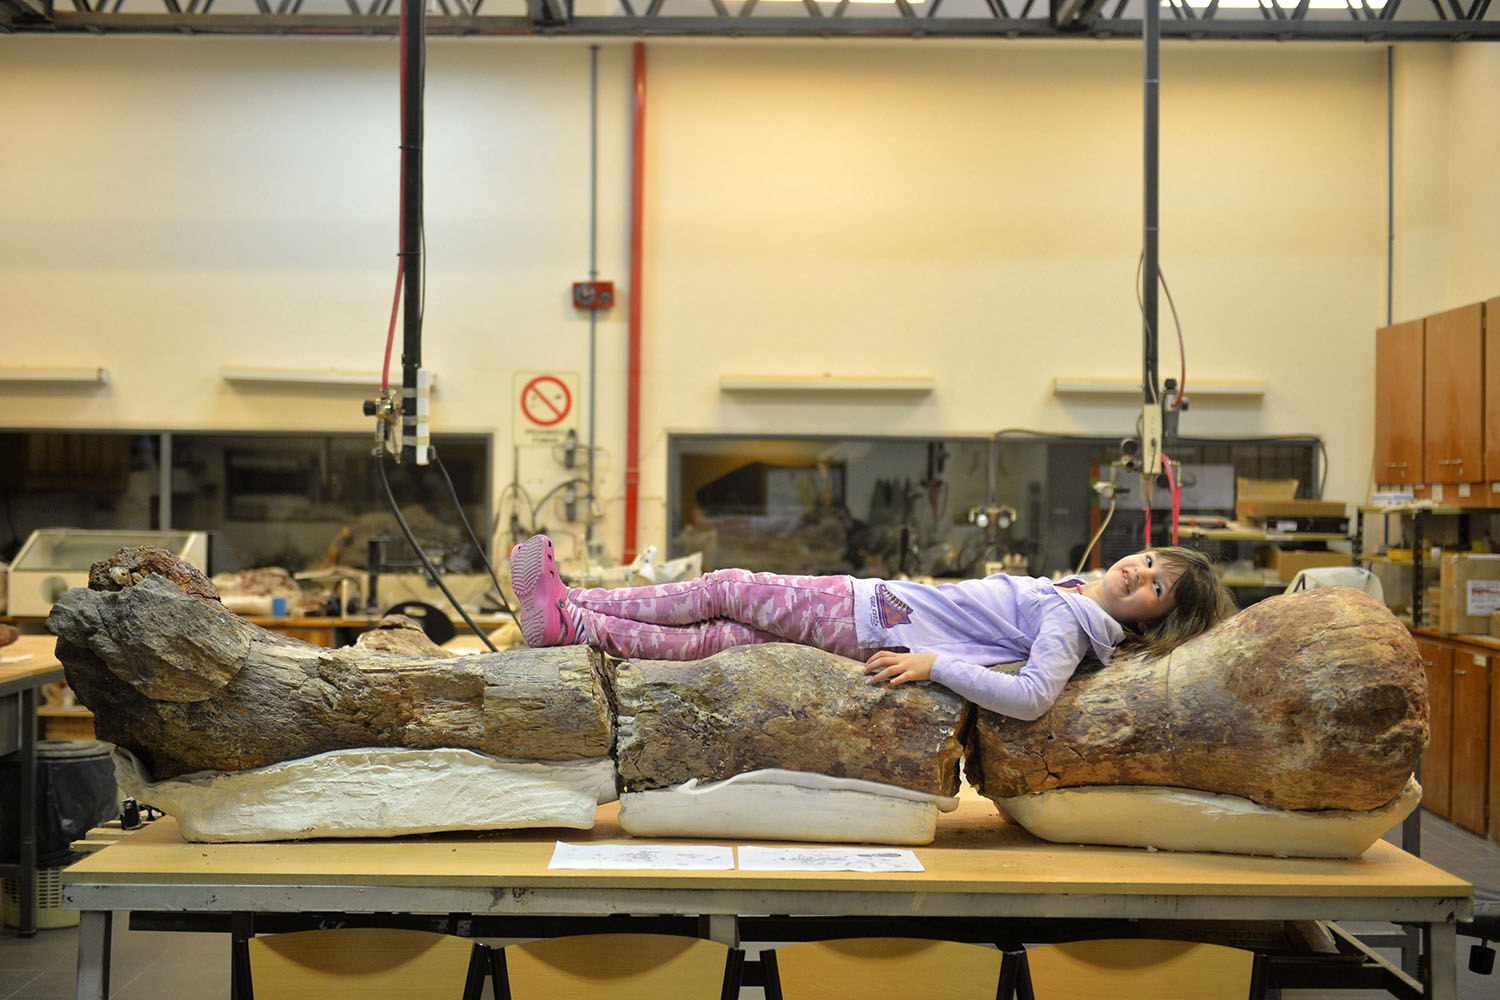 A girl, Marlene, lies on top of the original fossilized femur of a dinosaur displayed on exhibition at the Egidio Feruglio Museum in Argentina's Patagonian city of Trelew, on May 18, 2014.